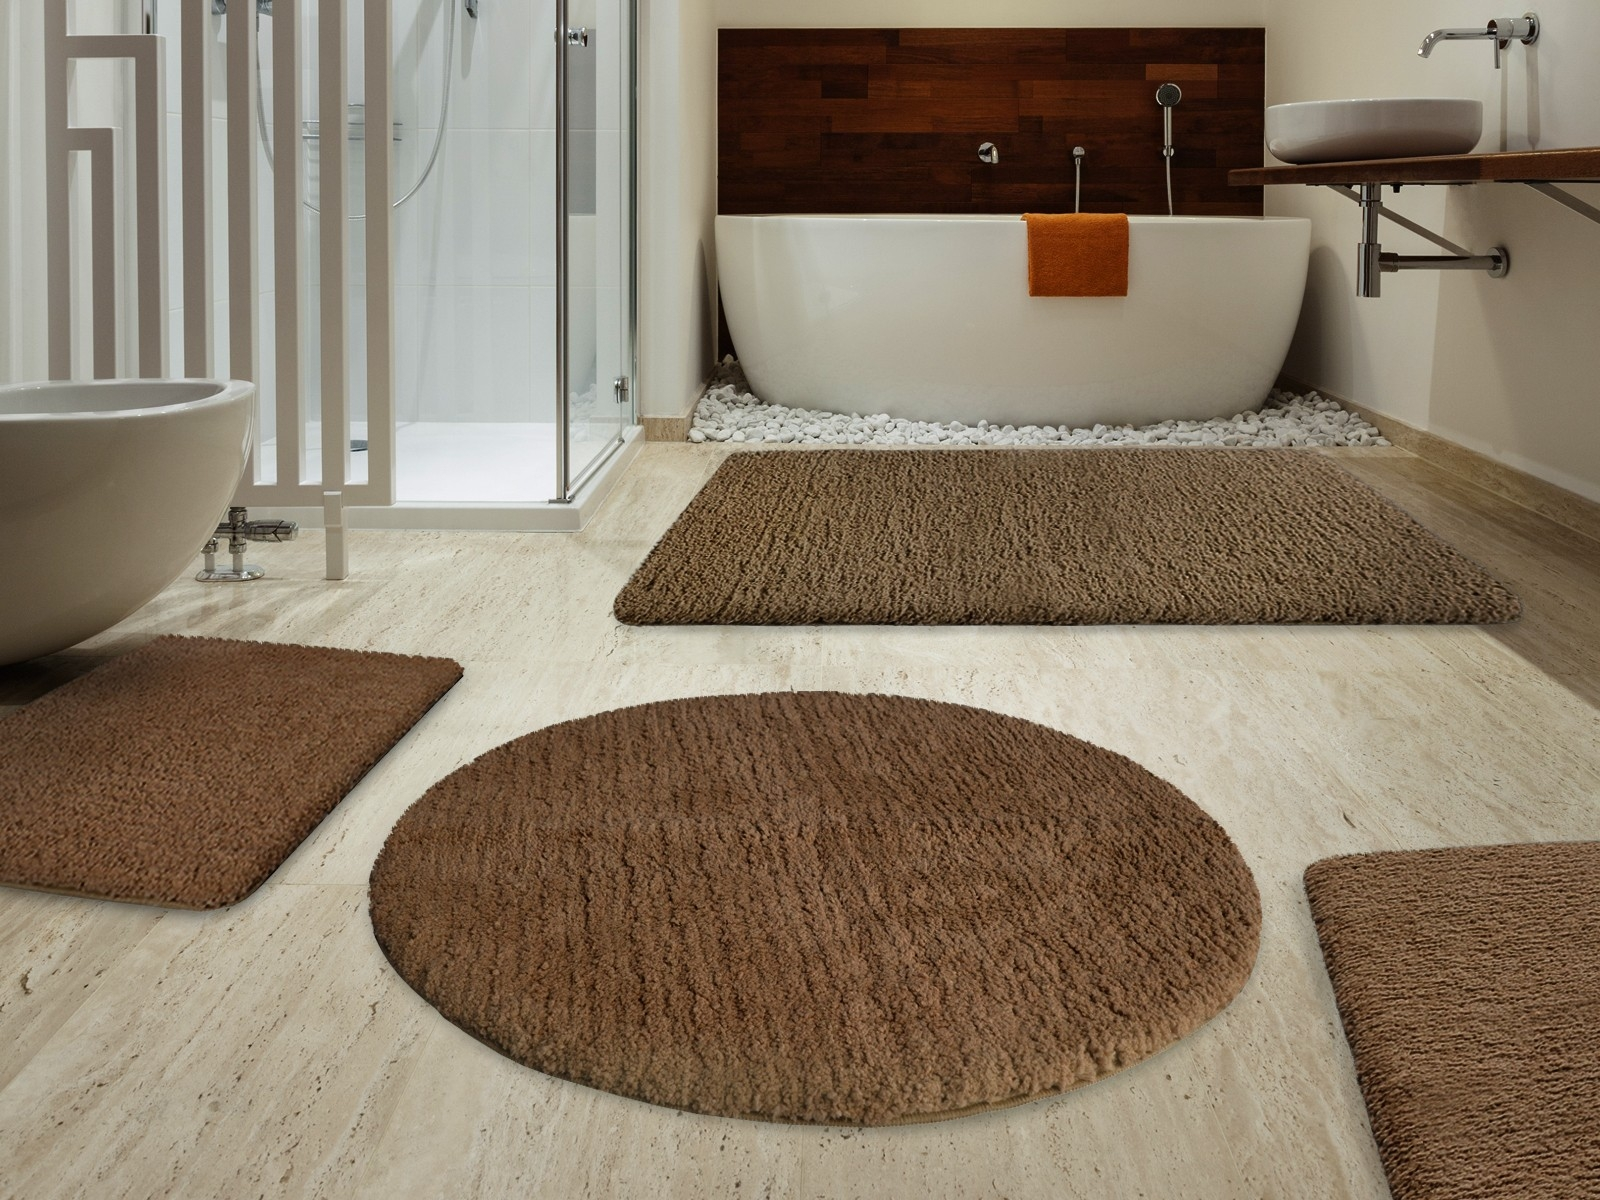 Large Rubber Backed Bath Mats